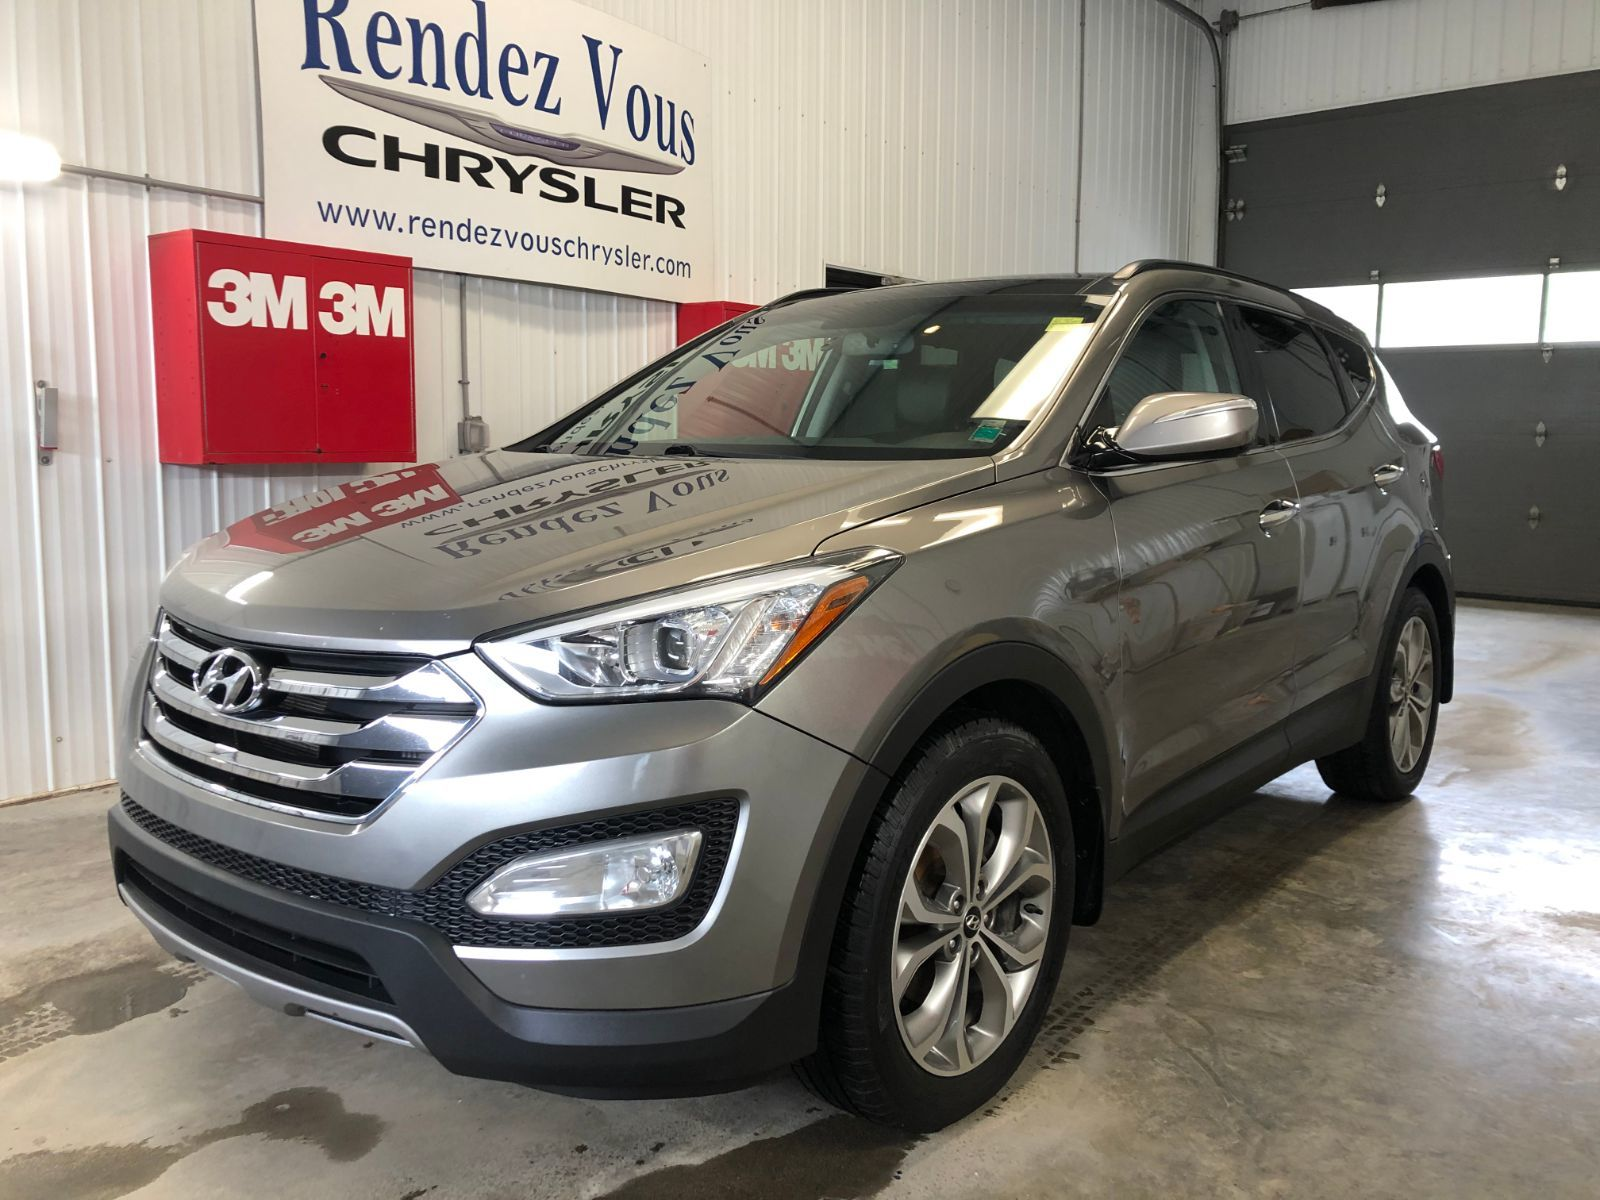 Rendez Vous Chrysler In Grand Sault And Edmunston 2014 Hyundai Santa Fe Sport Luxury 20161a